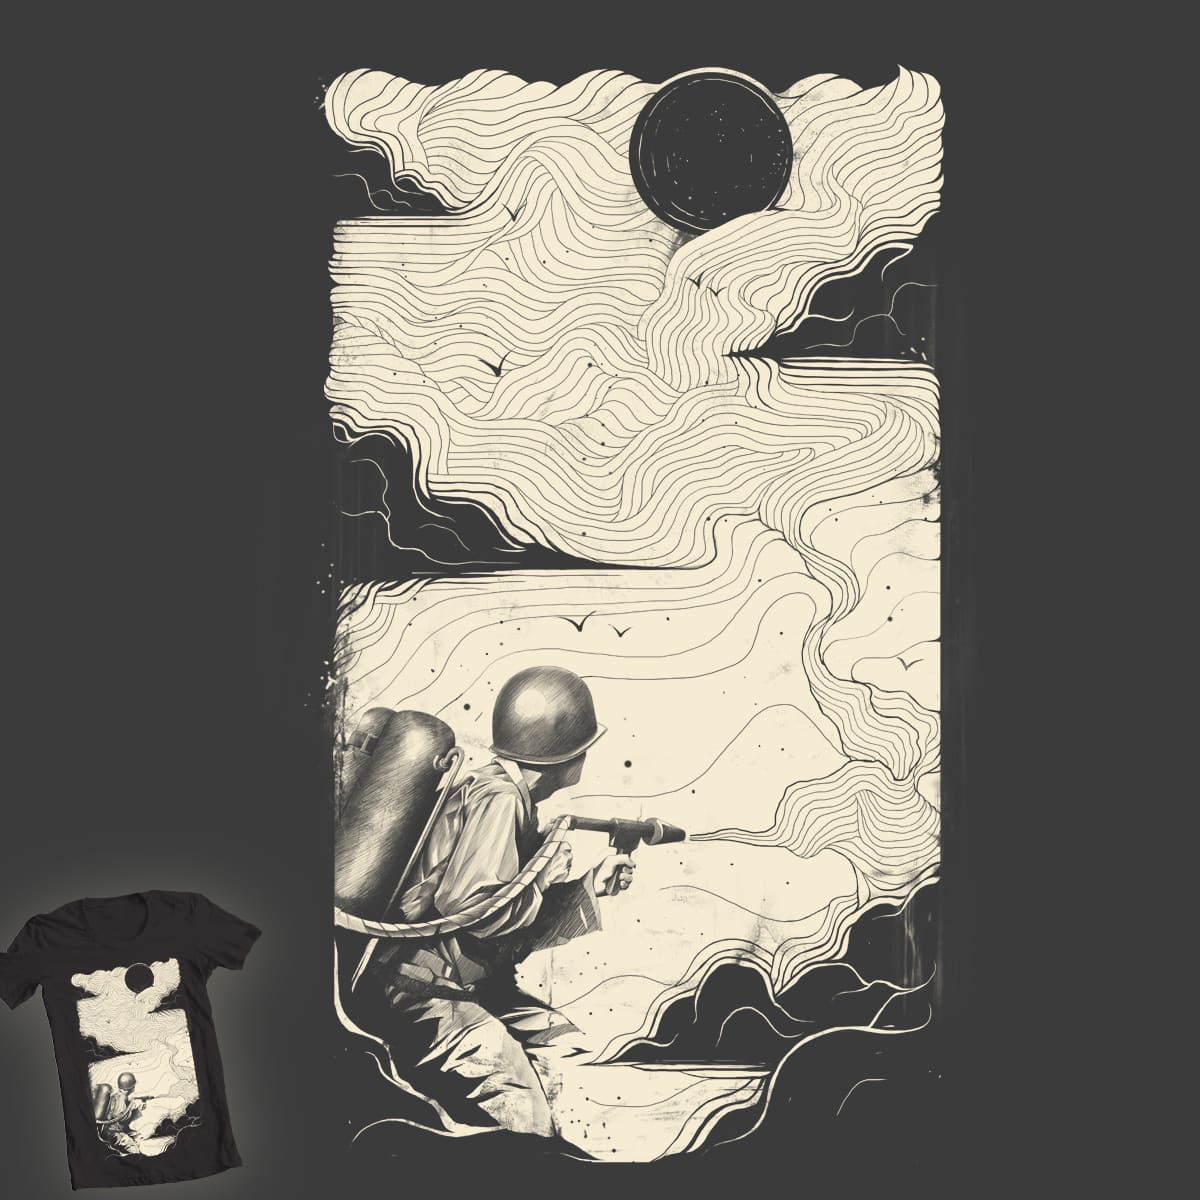 Sky Thrower by CUBAN0 on Threadless